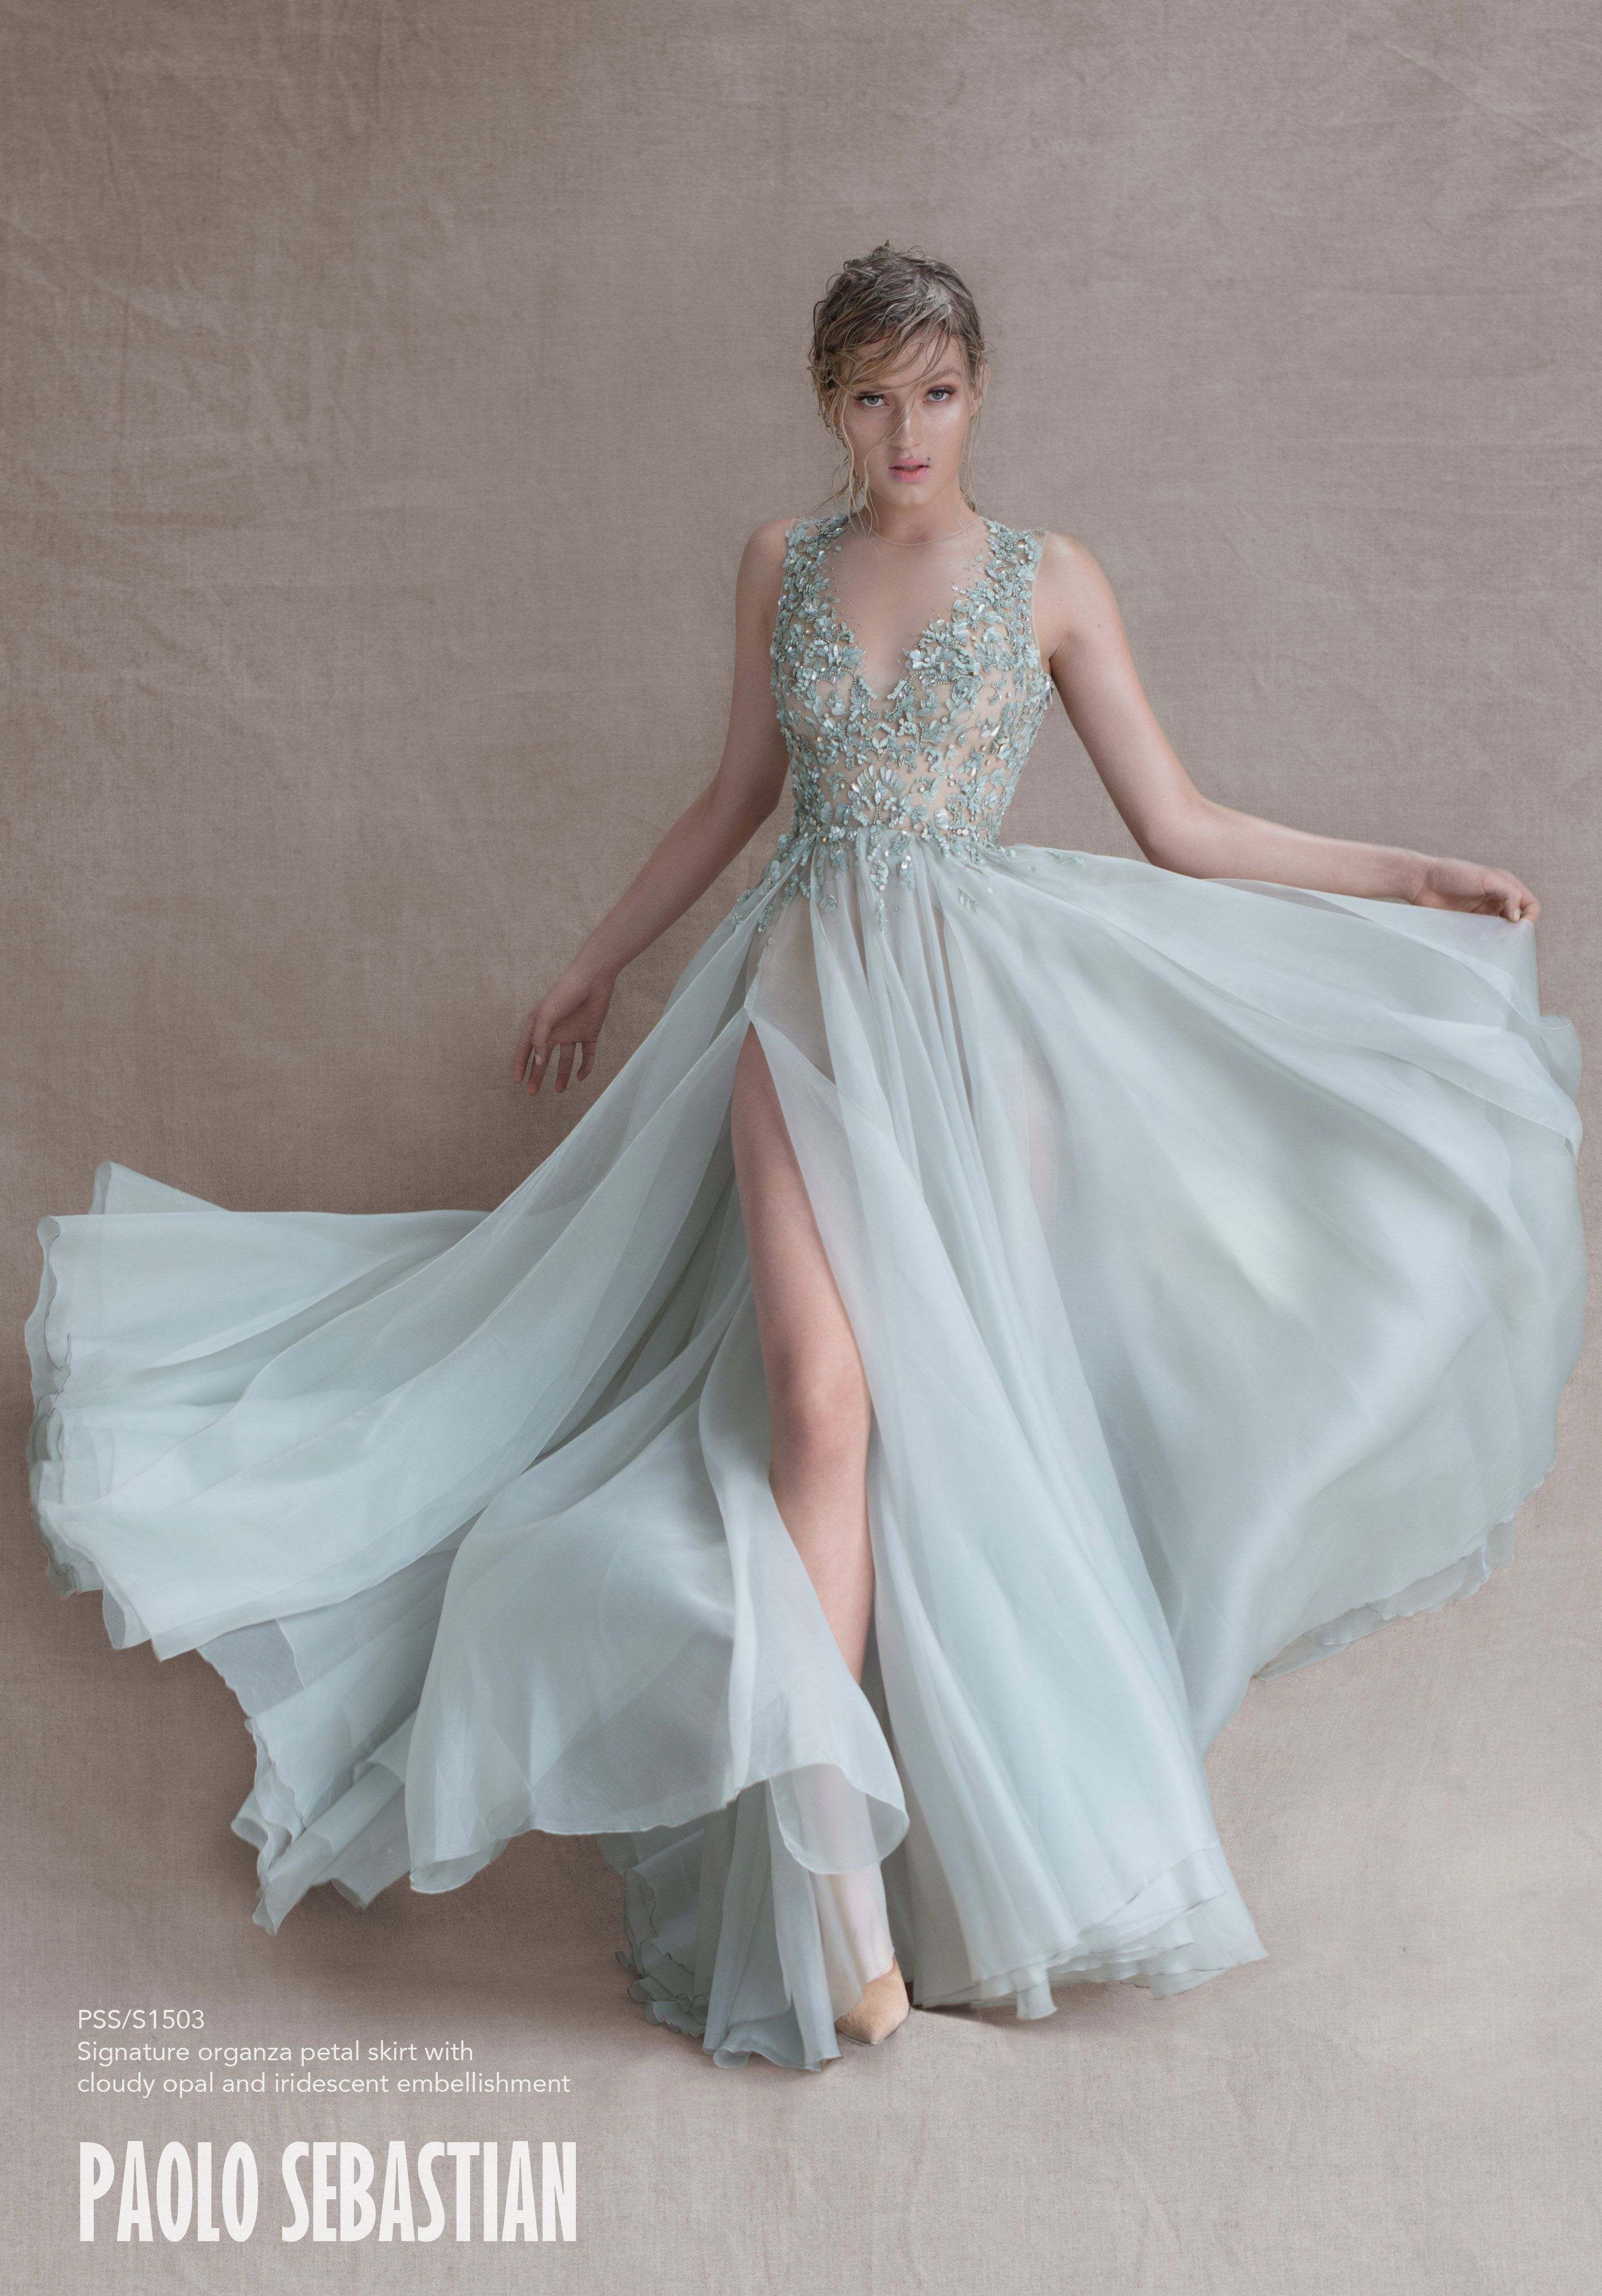 PSS/S1503 - Signature organza petal skirt with cloudy opal and ...